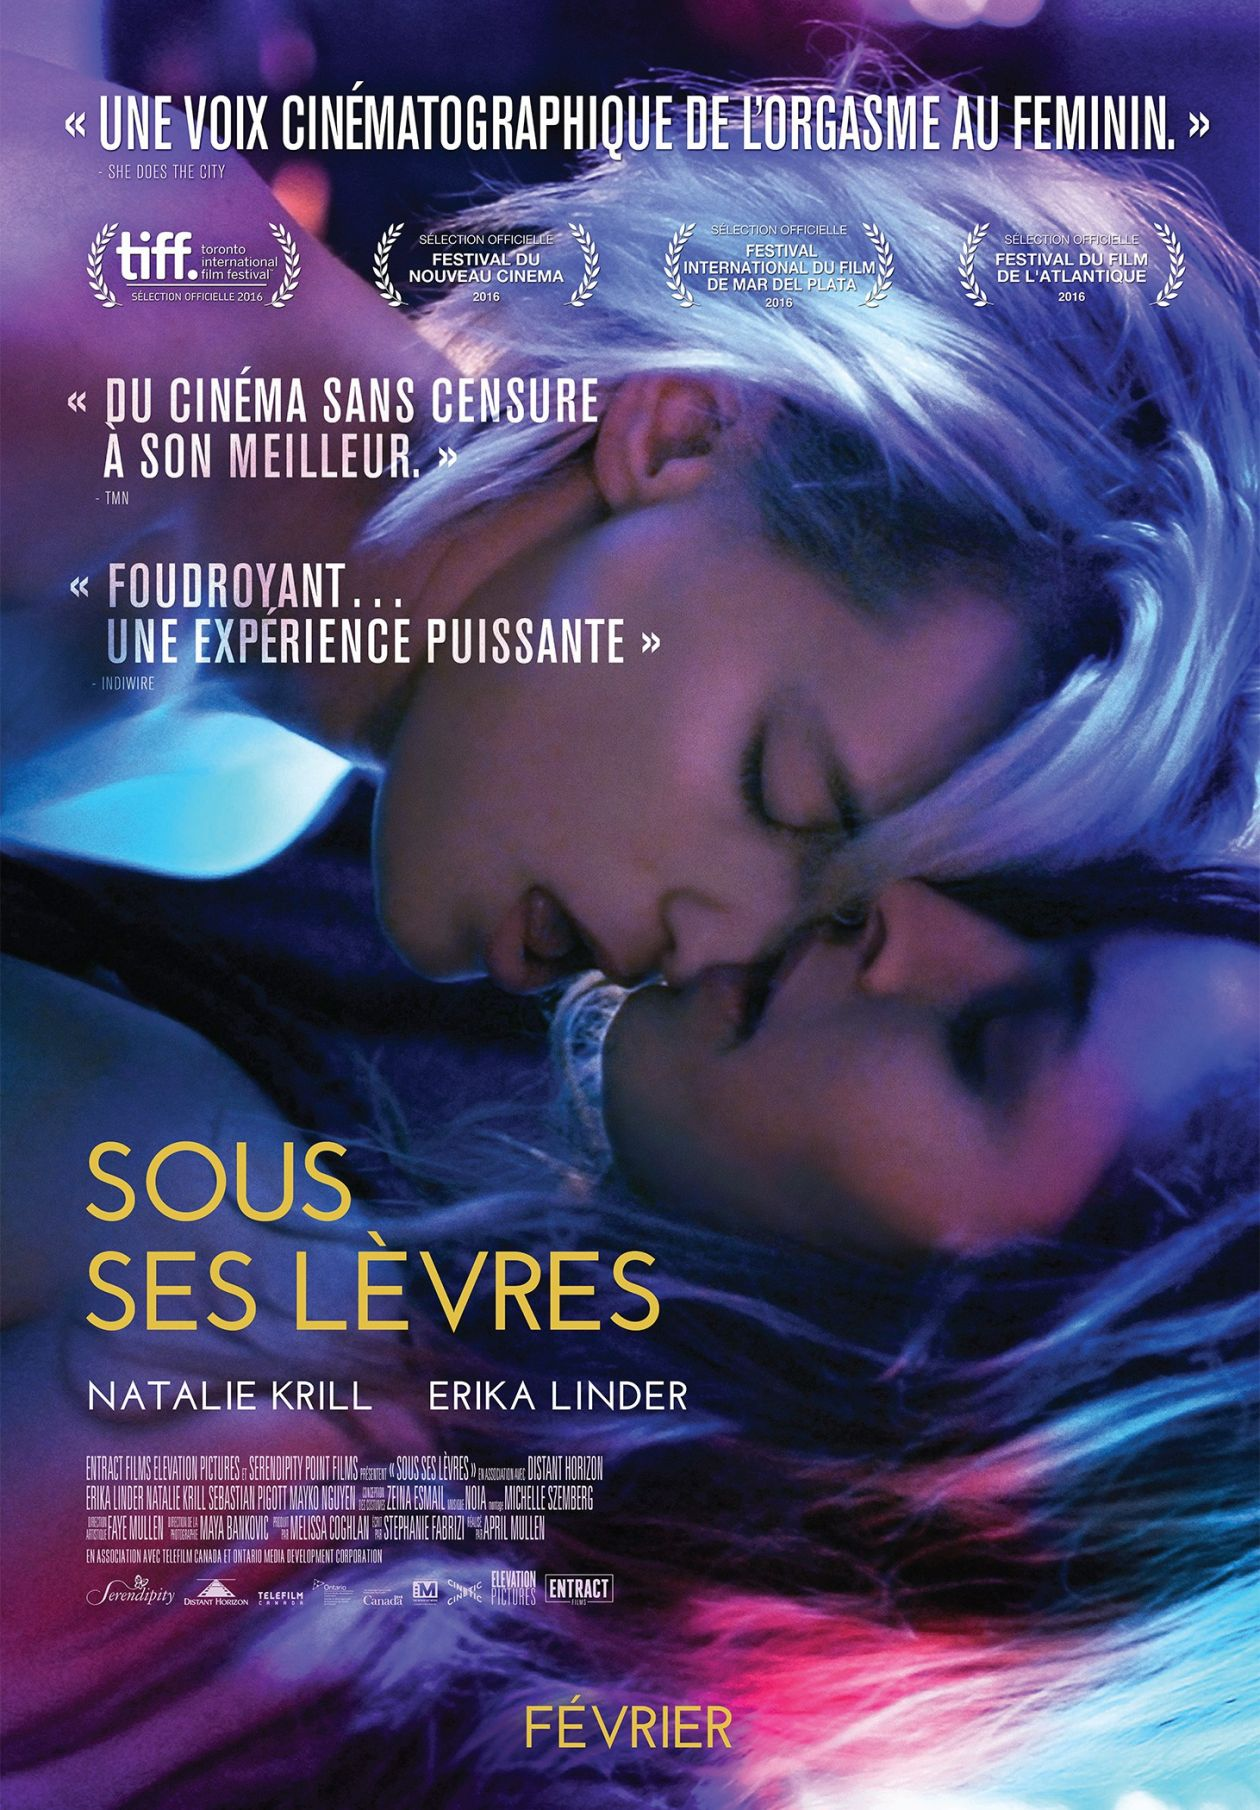 Erika Linder / Natalie Krill actresses | Below her mouth : Dallas / Jasmine | April Mullen 2016 / MOVIE POSTER / AFFICHE FILM / CANADA / SOUS SES LEVRES